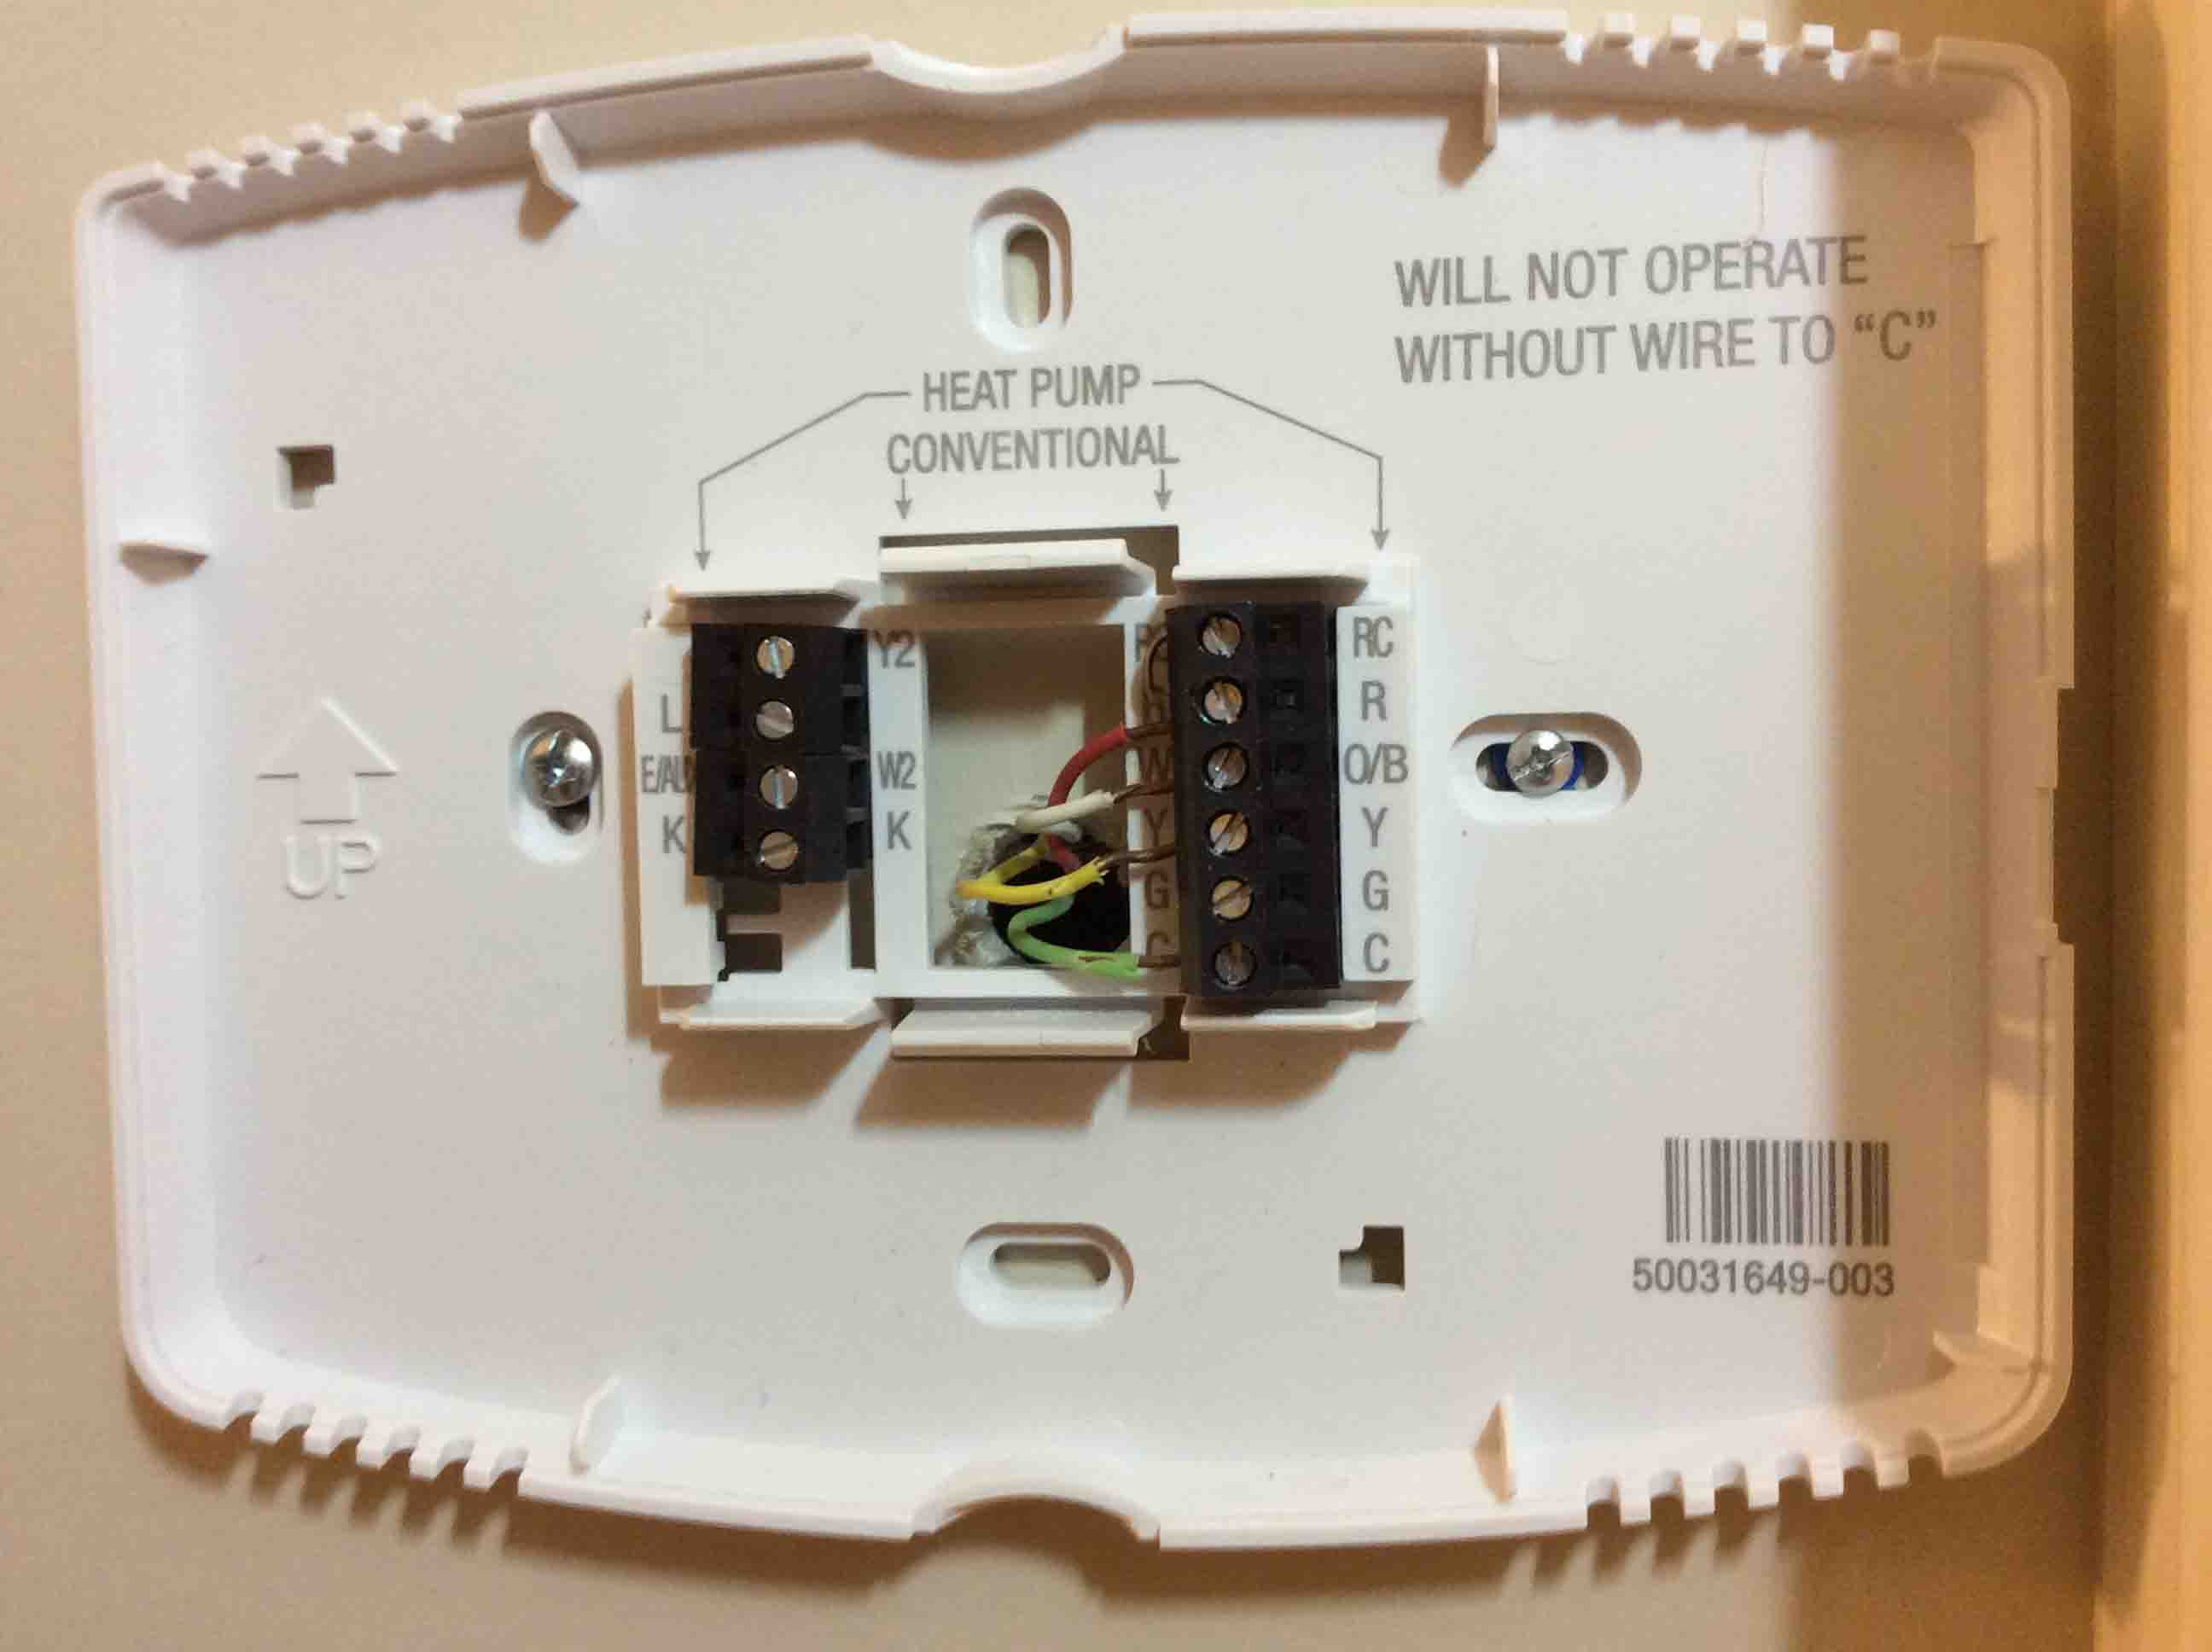 HoneywellWiFiThermostatWallPlateTypicalWiring_001 honeywell smart thermostat wiring instructions rth9580wf tom's wiring diagram for honeywell rth6580wf at gsmx.co